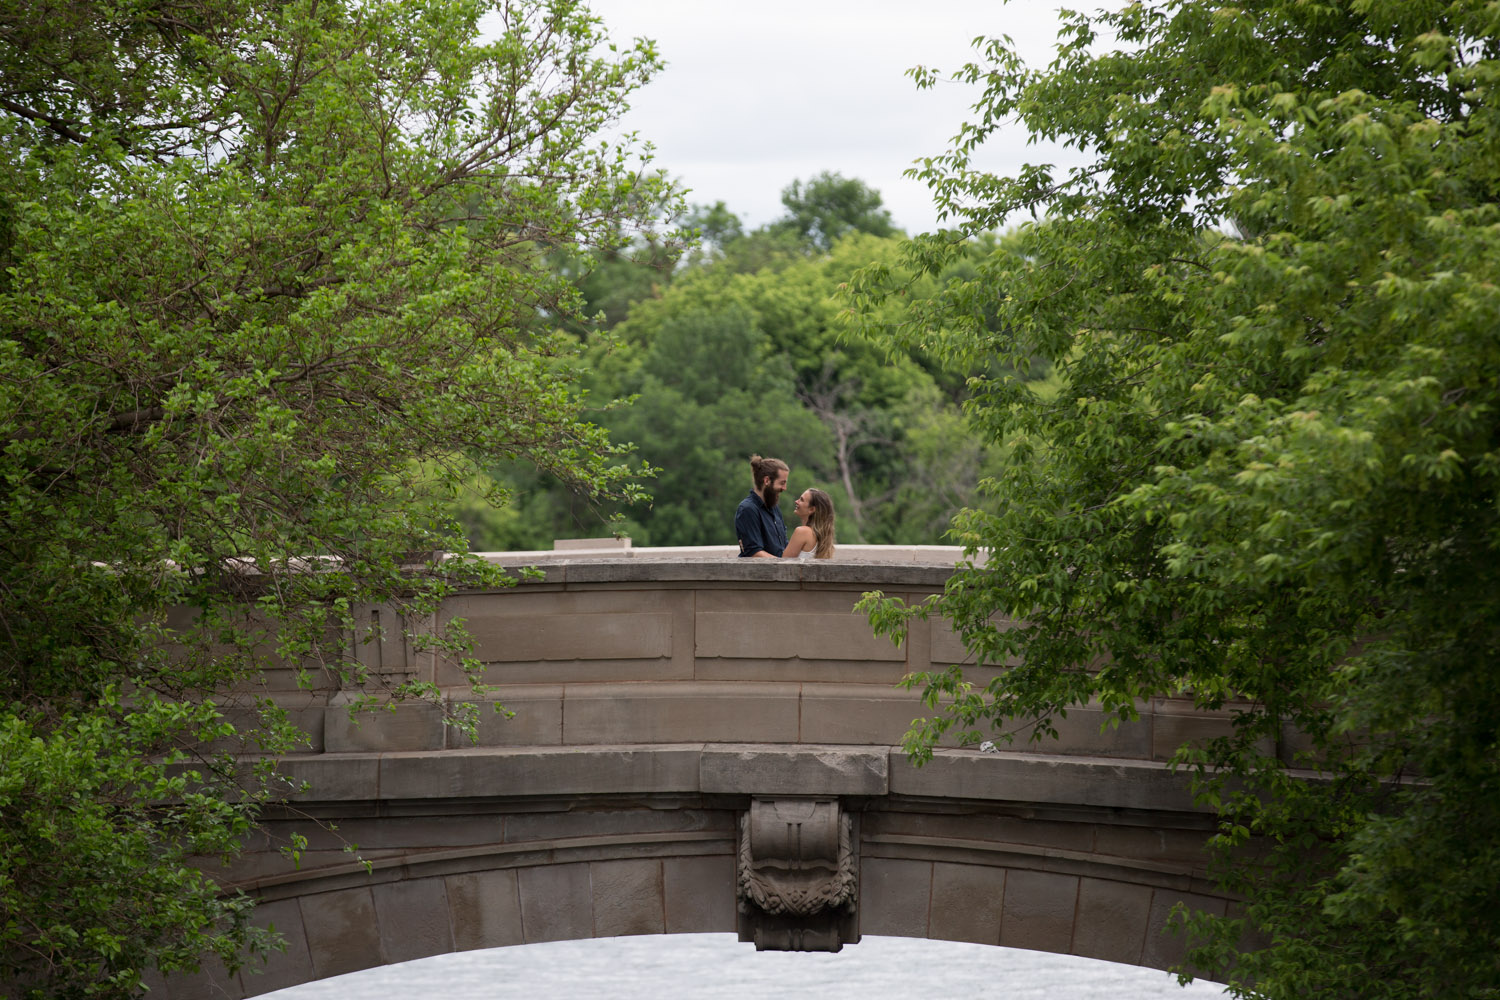 07-lake-of-the-isles-bridge-uptown-minneapolis-engagment-photographer-mahonen-photography.jpg